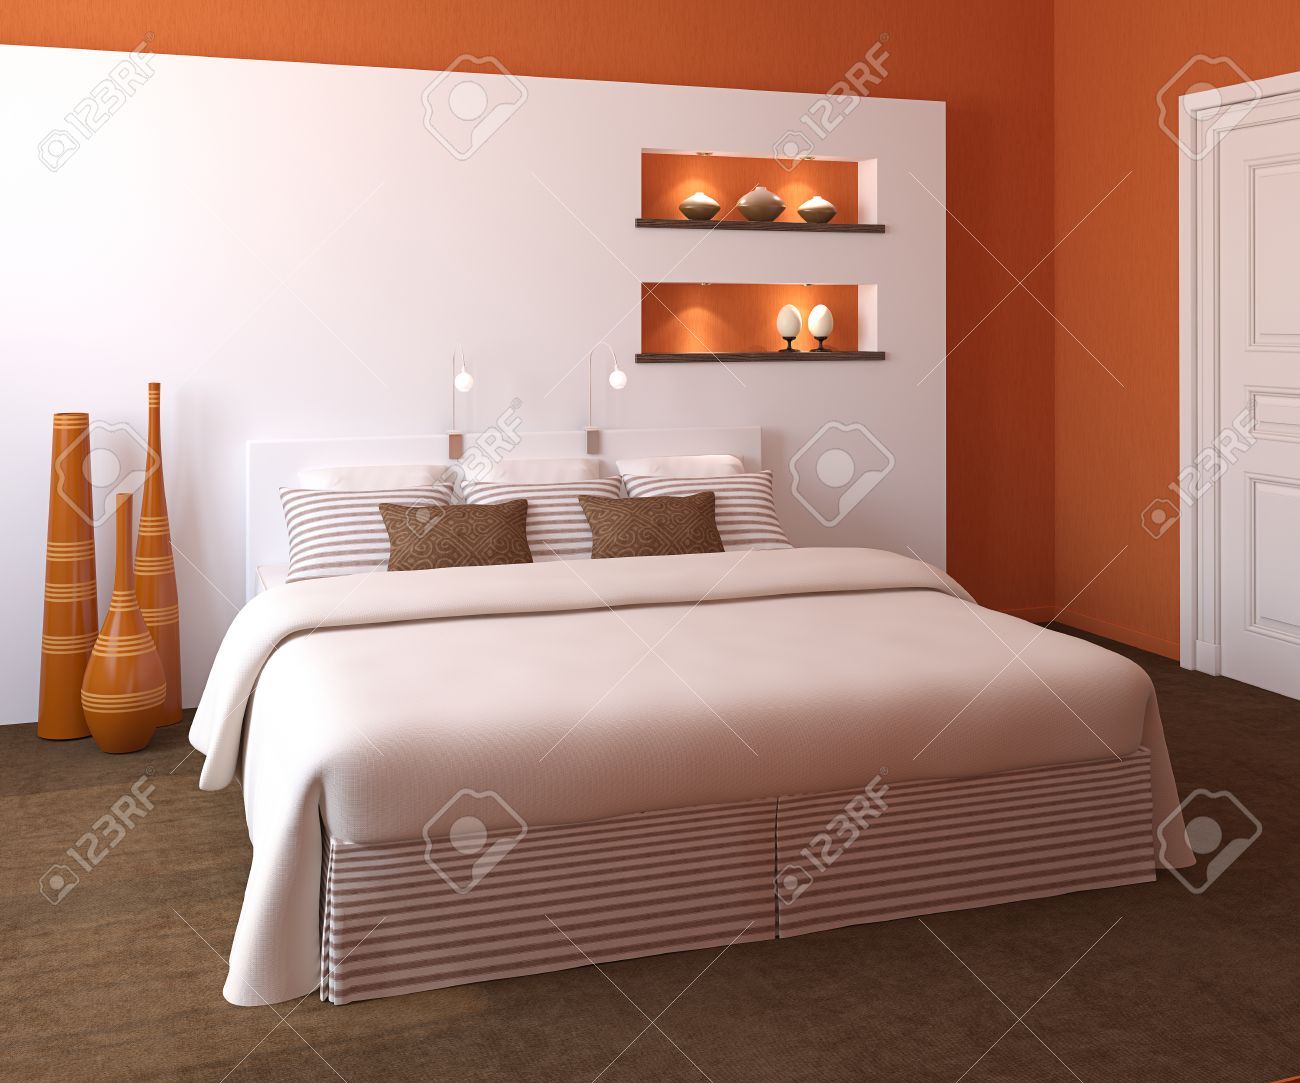 Modern bedroom interior with orange walls and king-size bed...